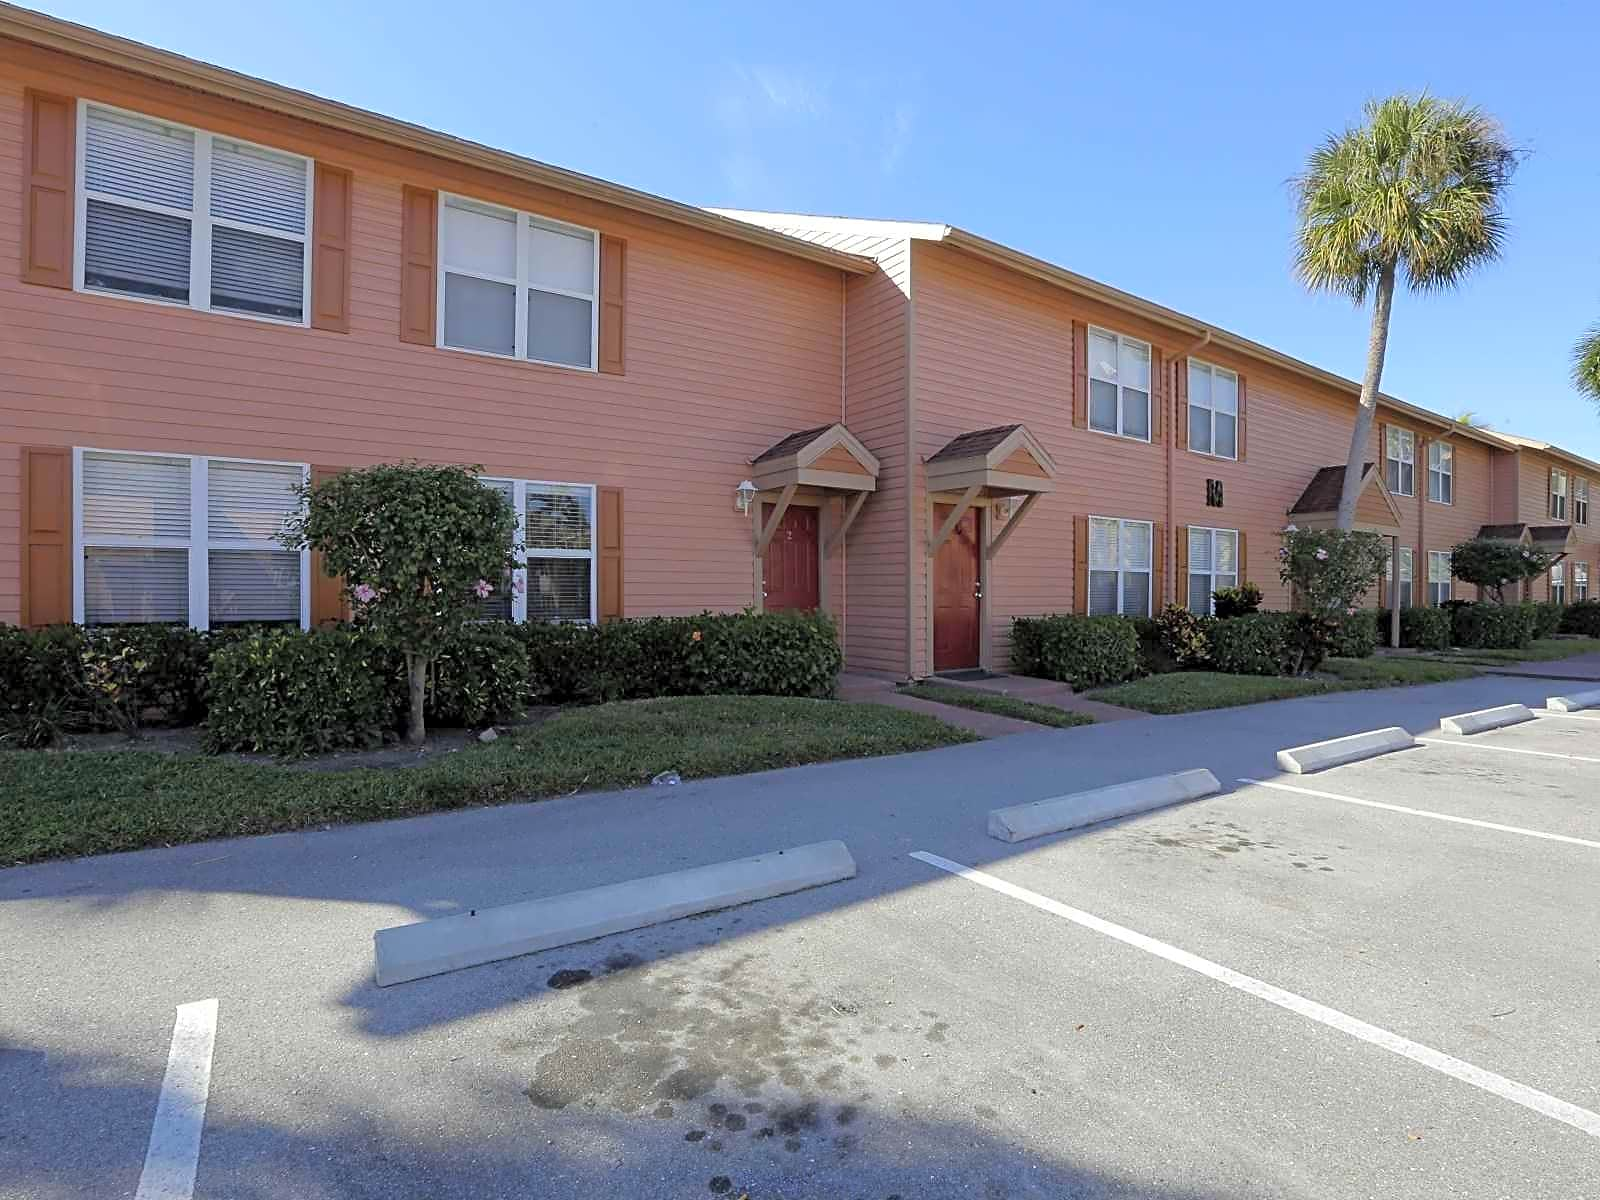 Salamanca Pointe for rent in Fort Myers